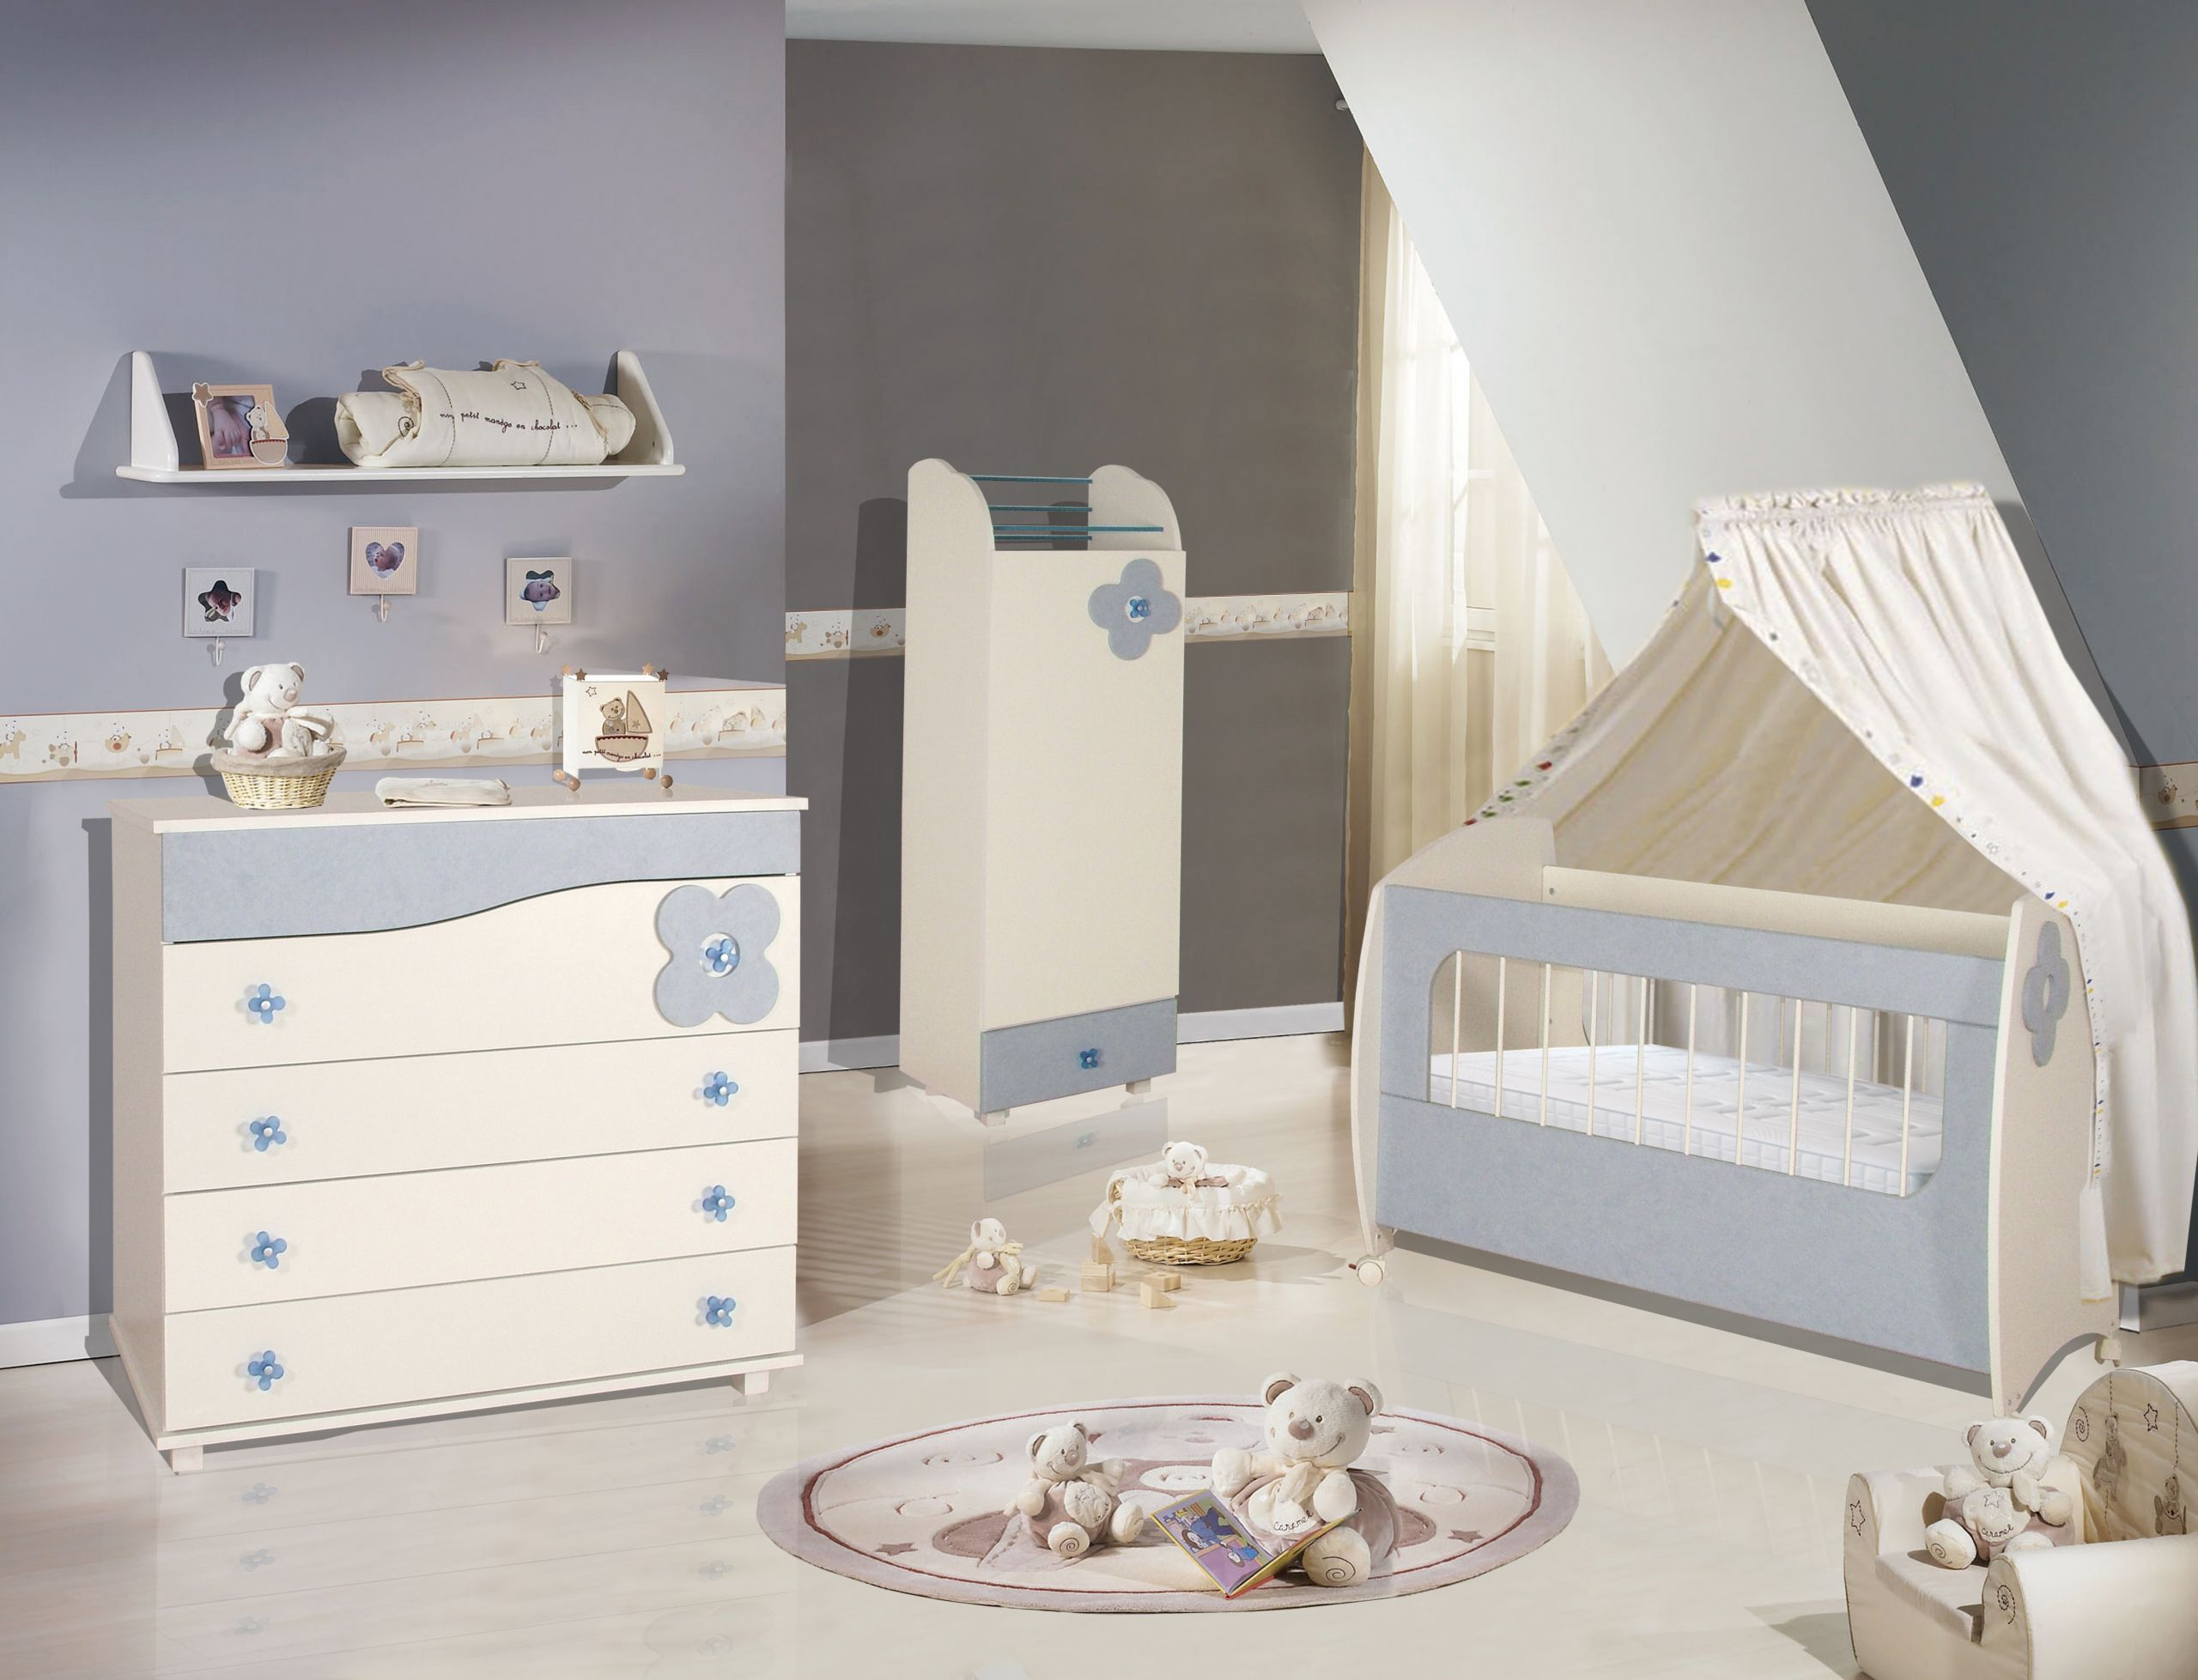 chambres pour lenfant et le bc3a3c2a9bc3a3c2a9 tunisie meuble chambre bc3a9bc3a9 a vendre meuble chambre bc3a9bc3a9 fille